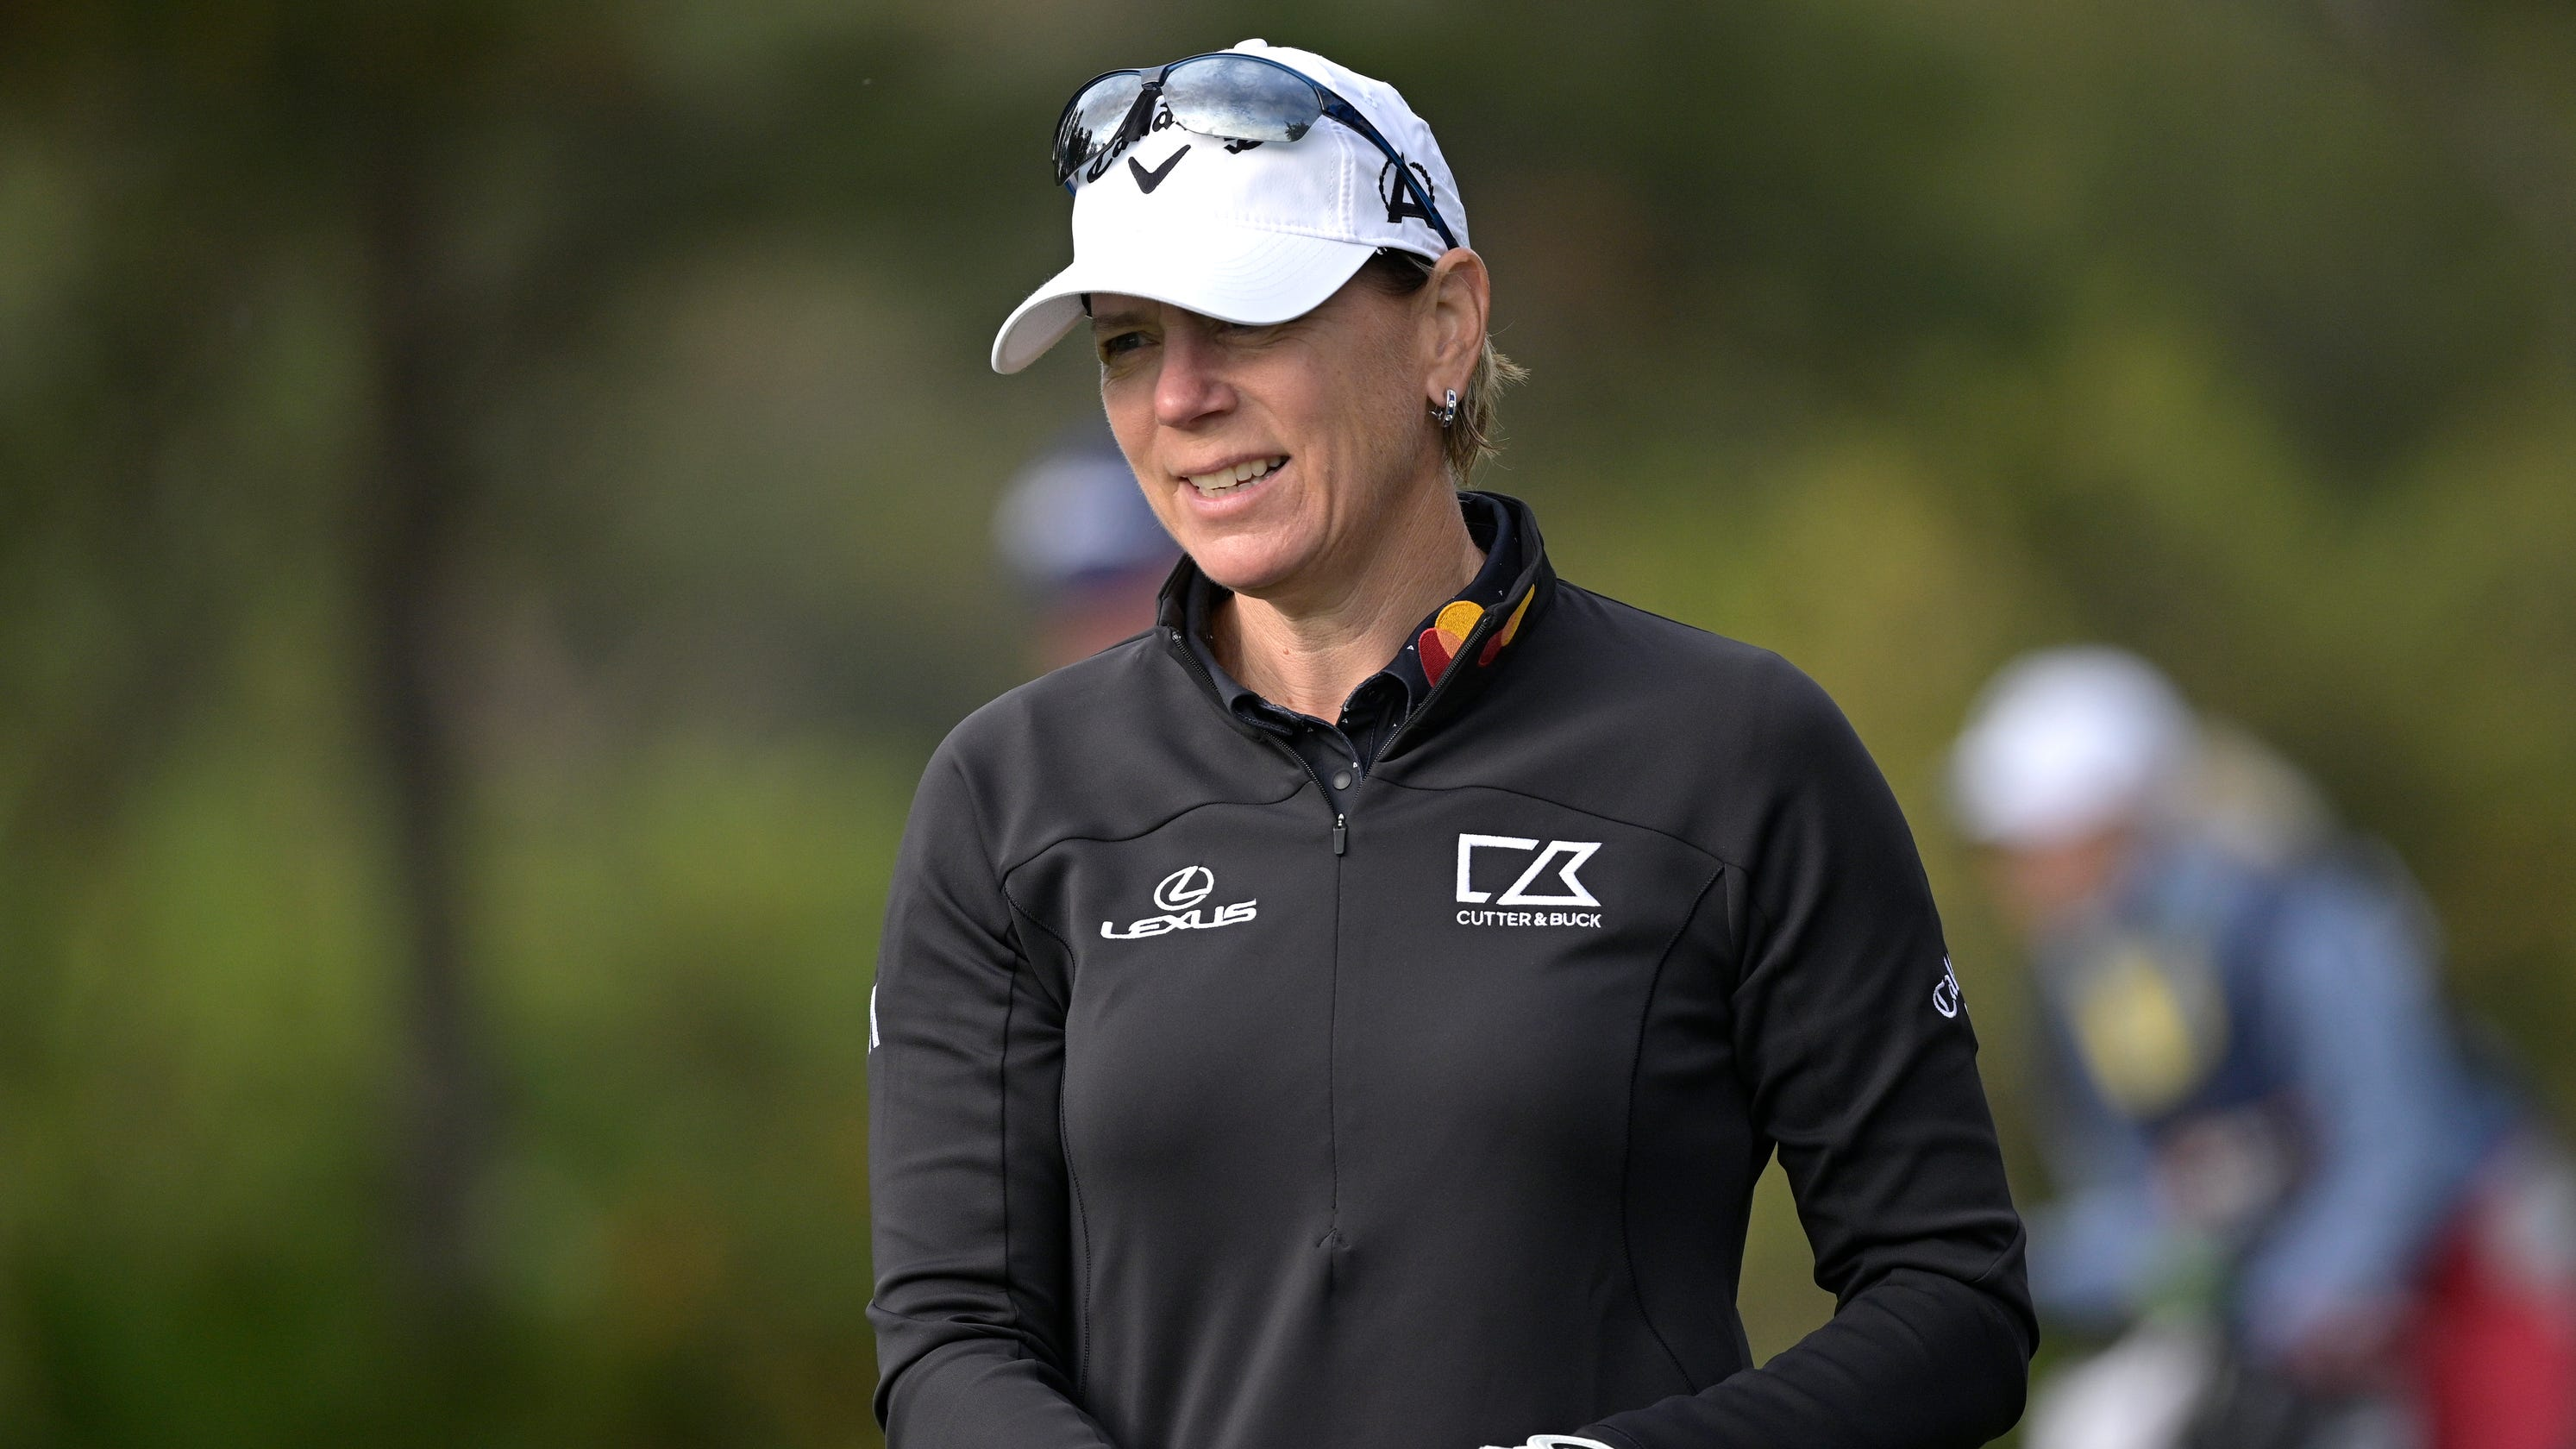 Opinion: Annika Sorenstam and much of golf world refuse to break from Donald Trump